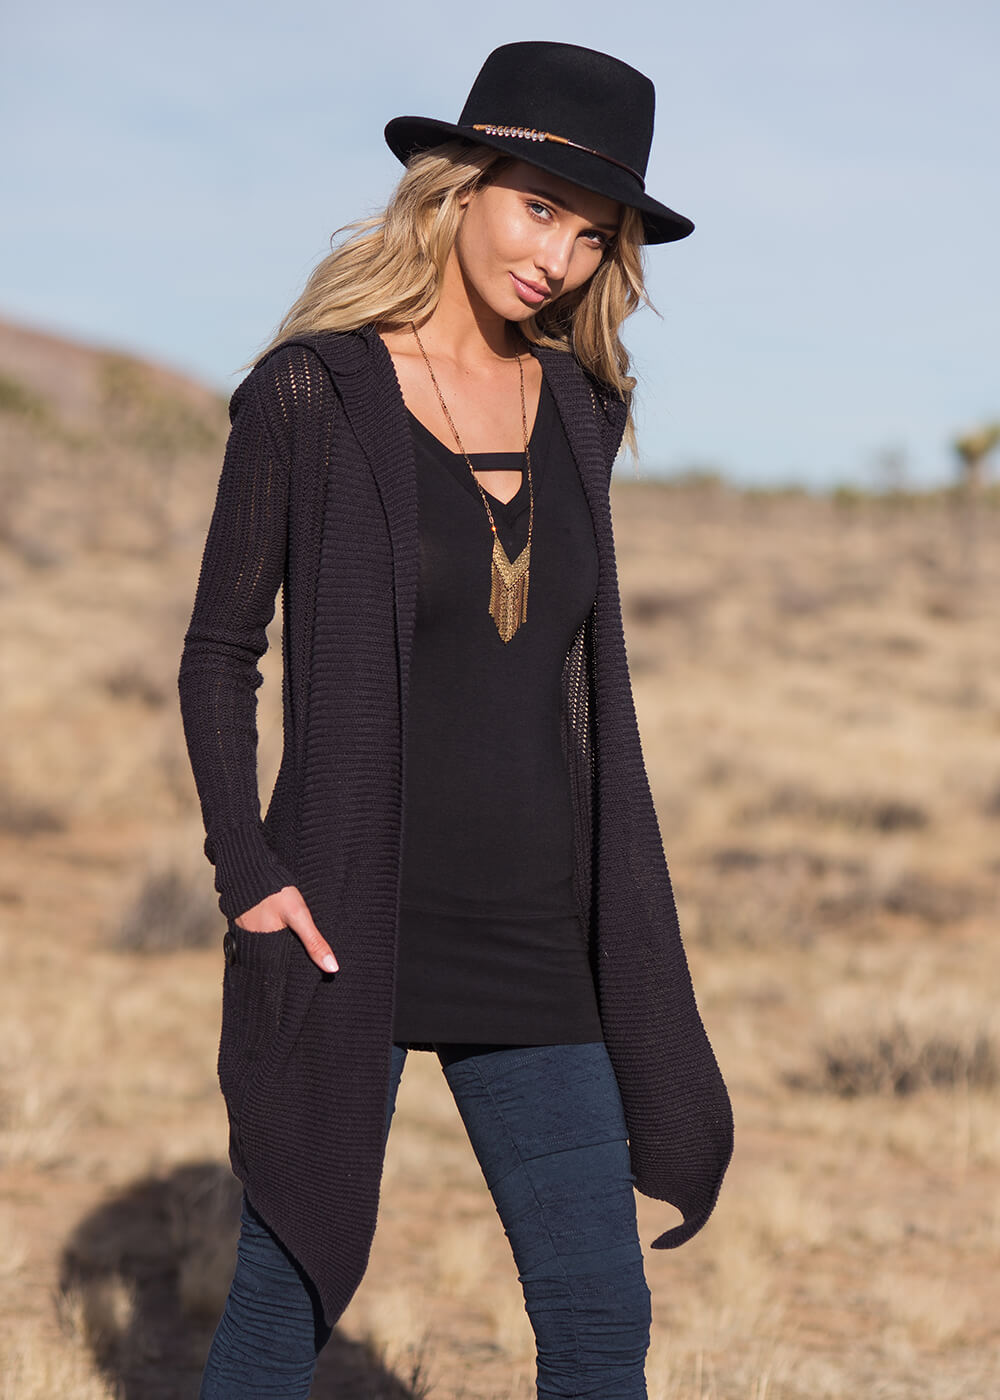 Avalong Cardigan in Hemp & Organic Cotton - Nomads Hemp Wear